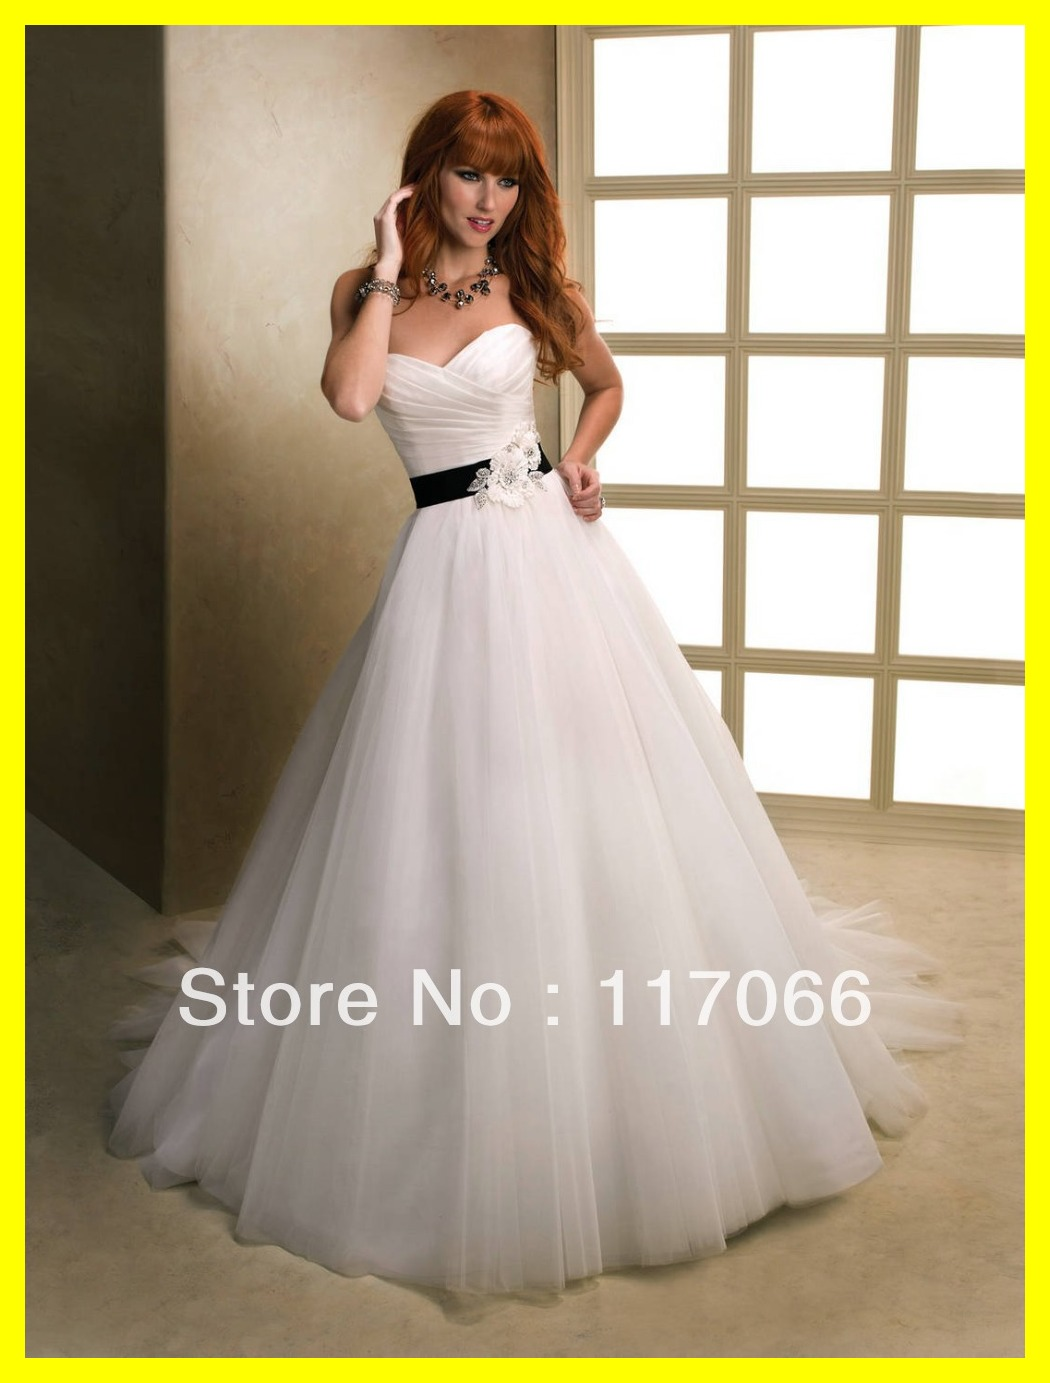 Short White Wedding Dresses Cute Party Sleeve Long Sleeved